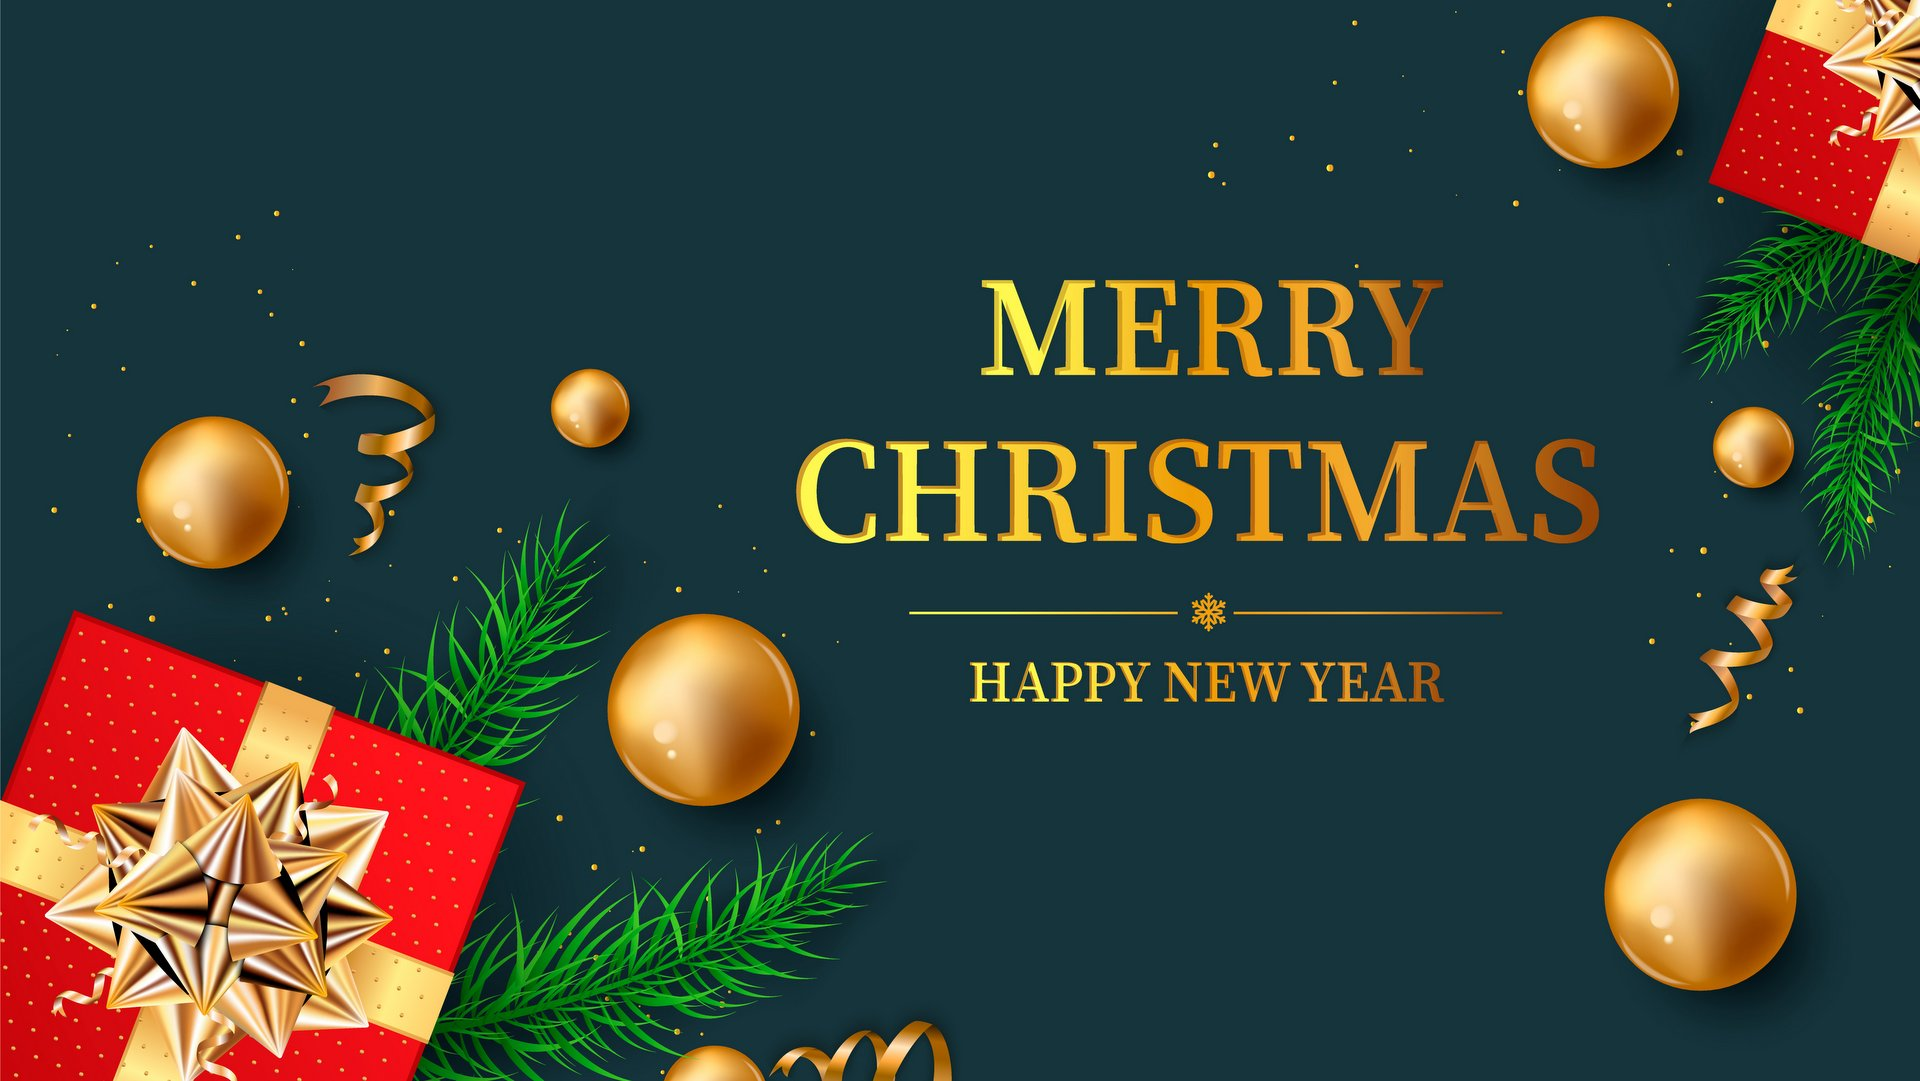 Merry Christmas and Happy New Year HD Wallpaper 1920x1080